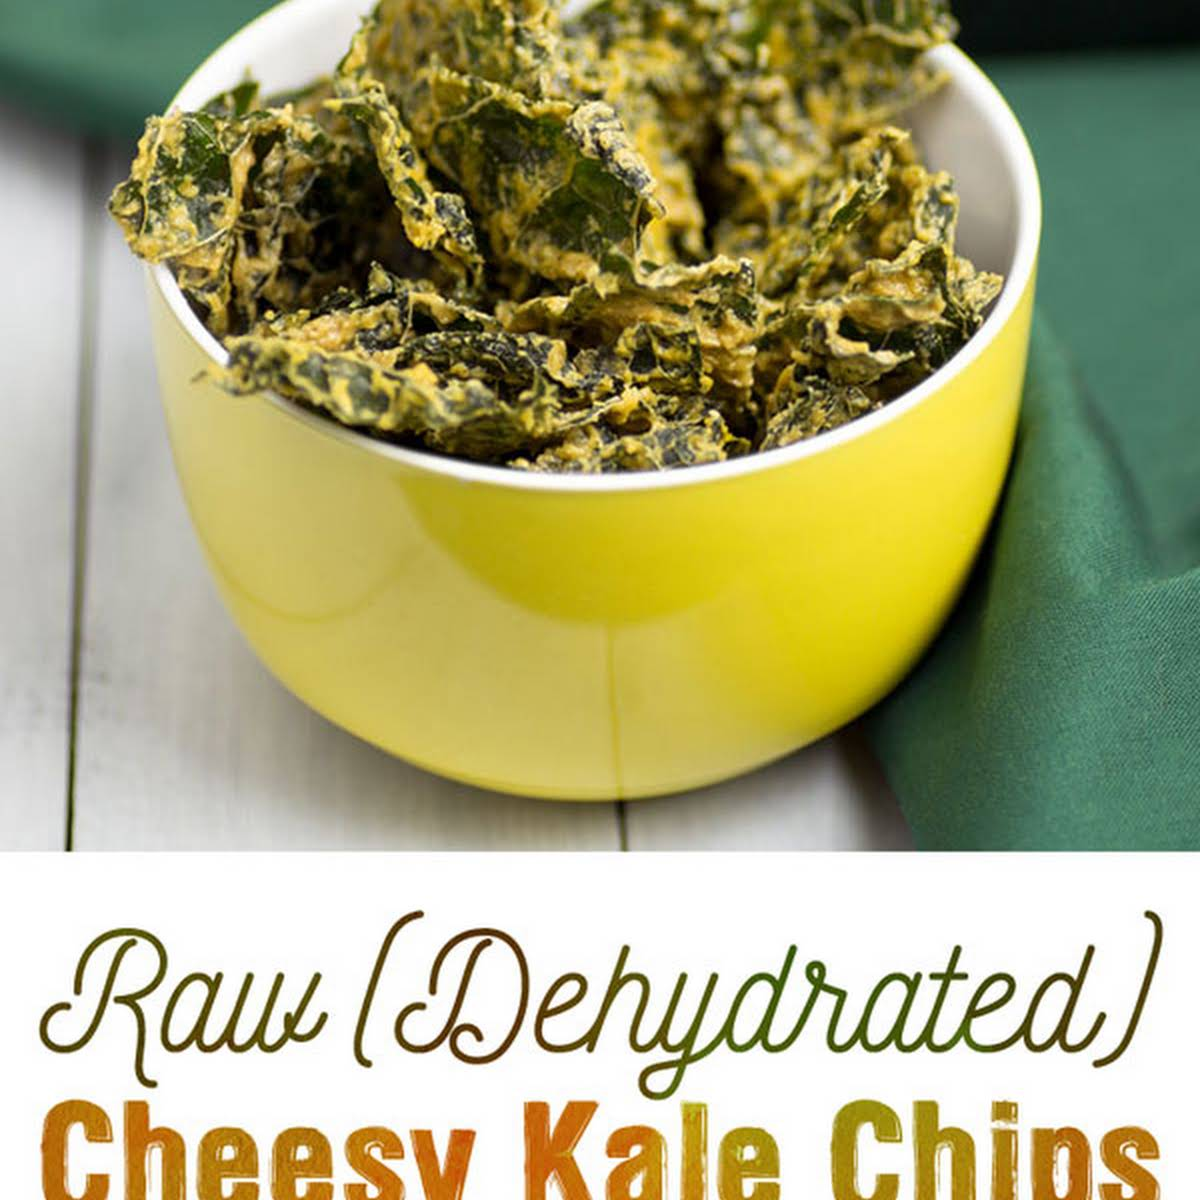 Raw (Dehydrated) Cheesy Kale Chips